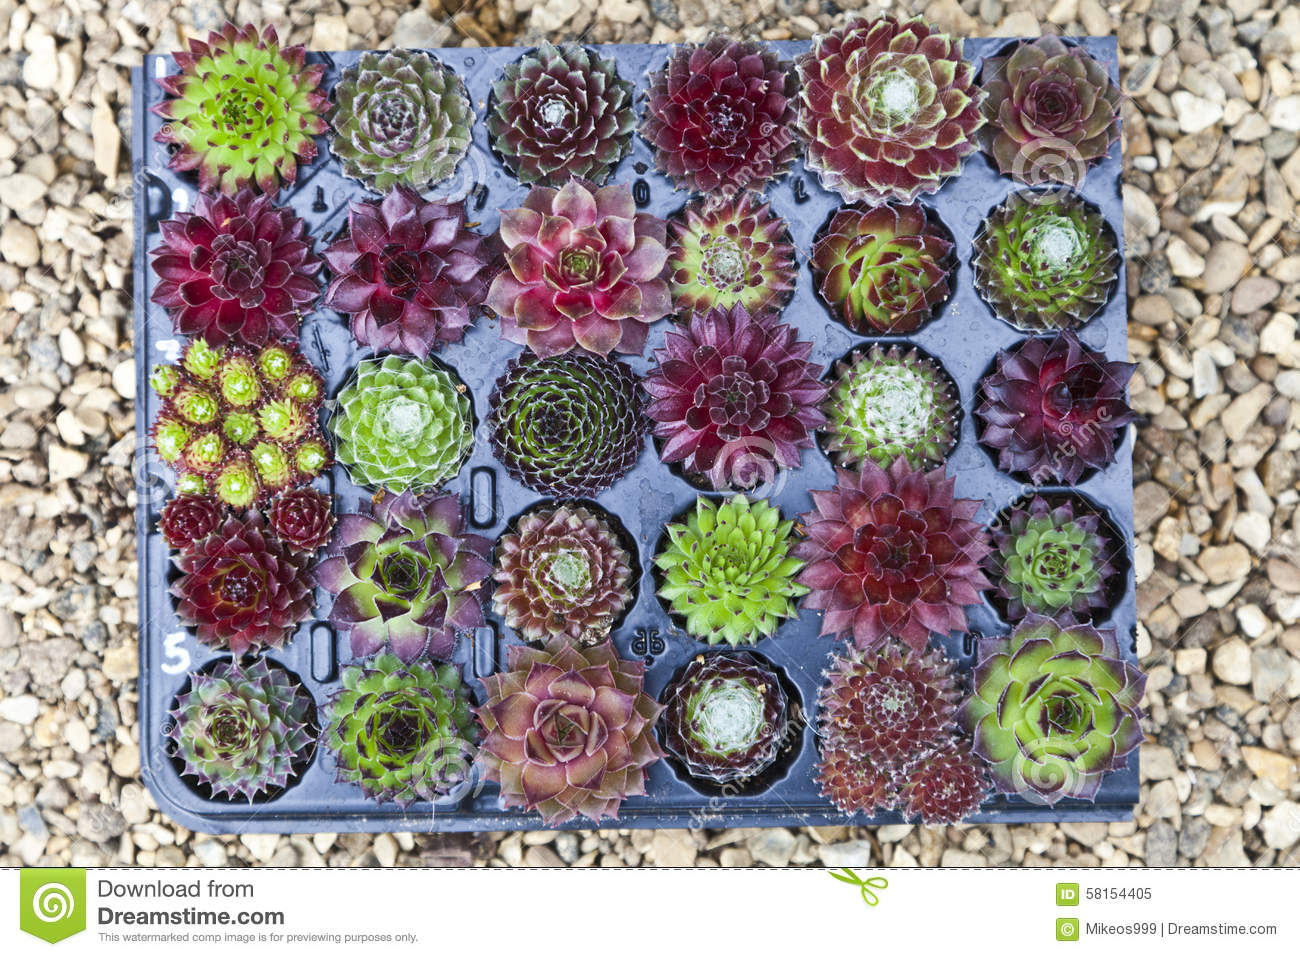 Sempervivum Stock Photo - Image: 58154405